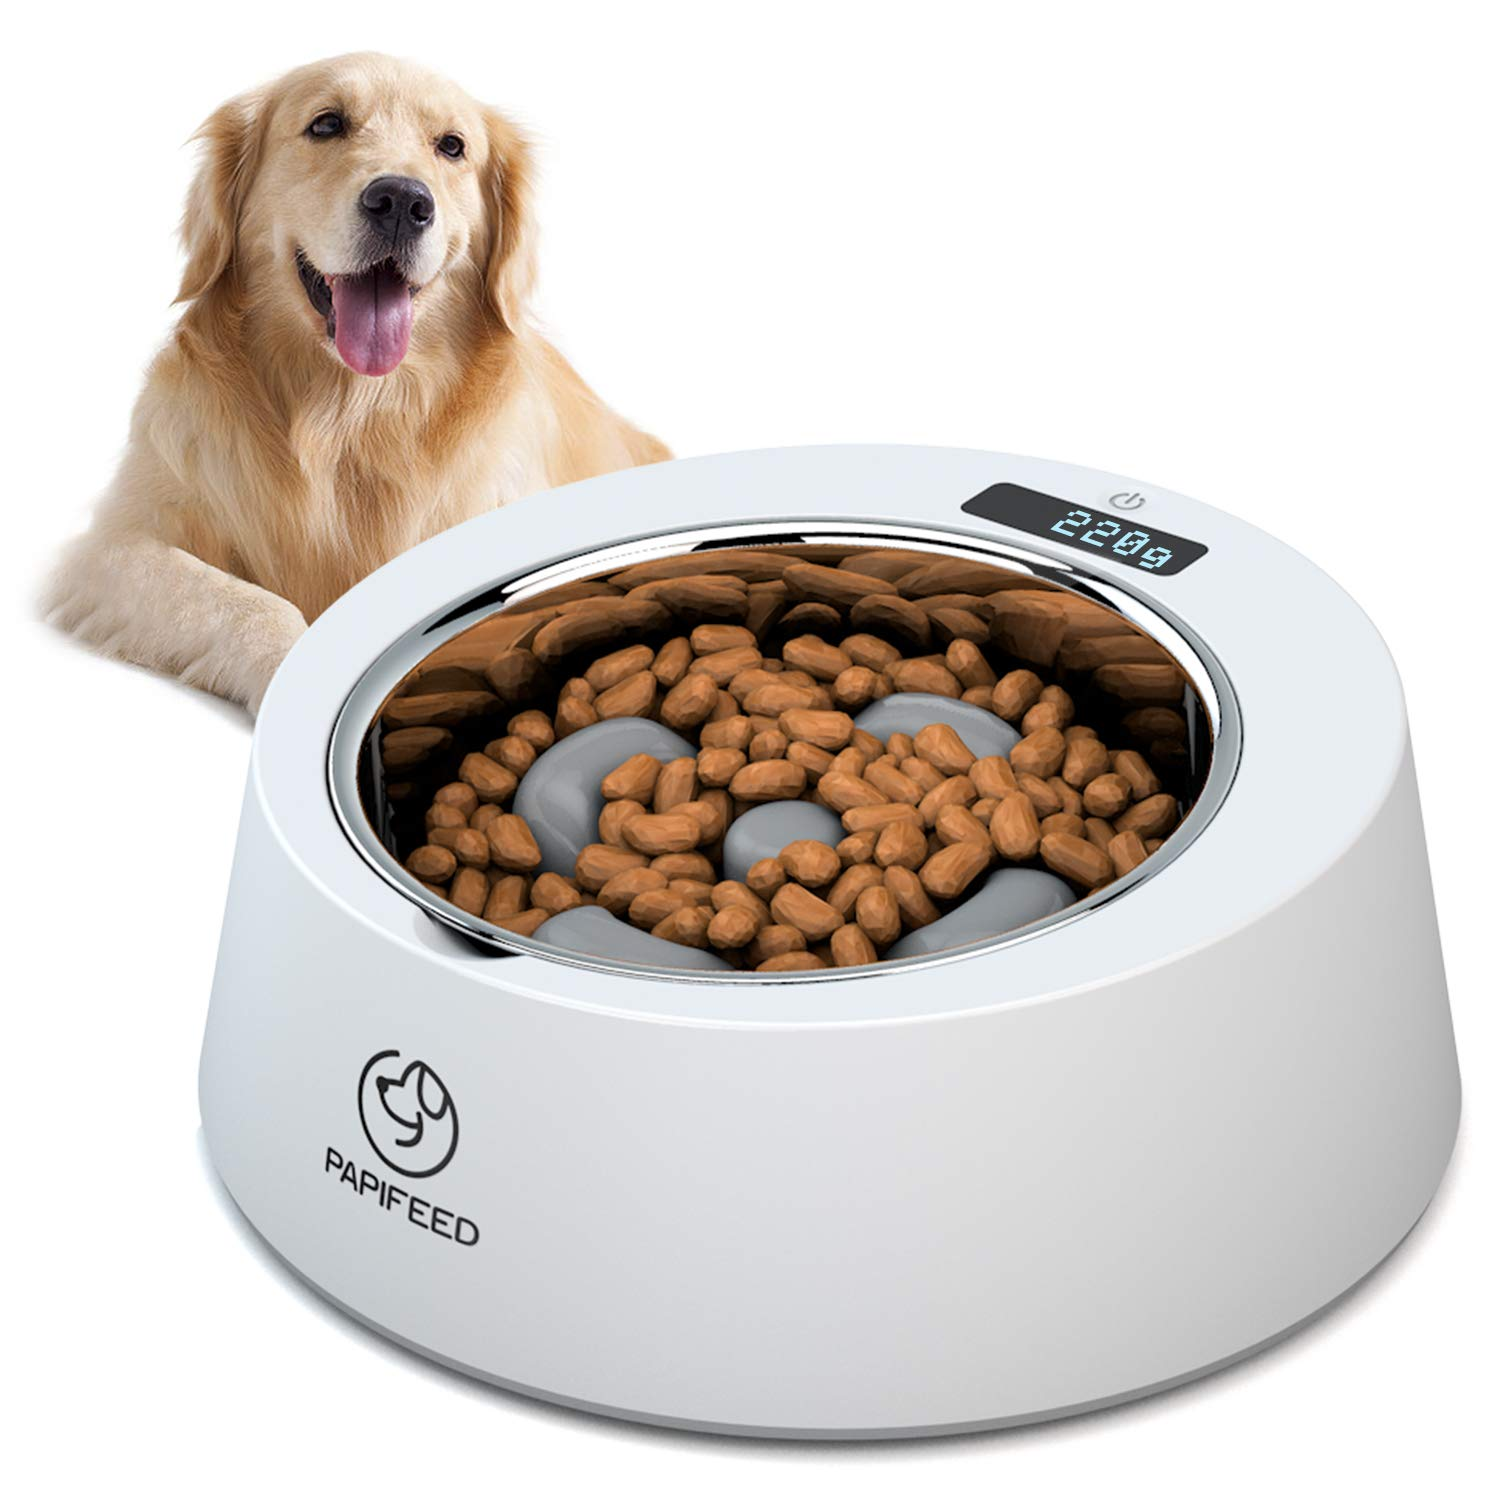 PAPIFEED Slow Feed Dog Bowl, Multifunctional Digital Scale Pet Feeder, Accurate Smart Weighing Stainless Steel Dog Bowls, Non Slip Interactive Slow Feeder for Small Medium Dogs Cats by PAPIFEED